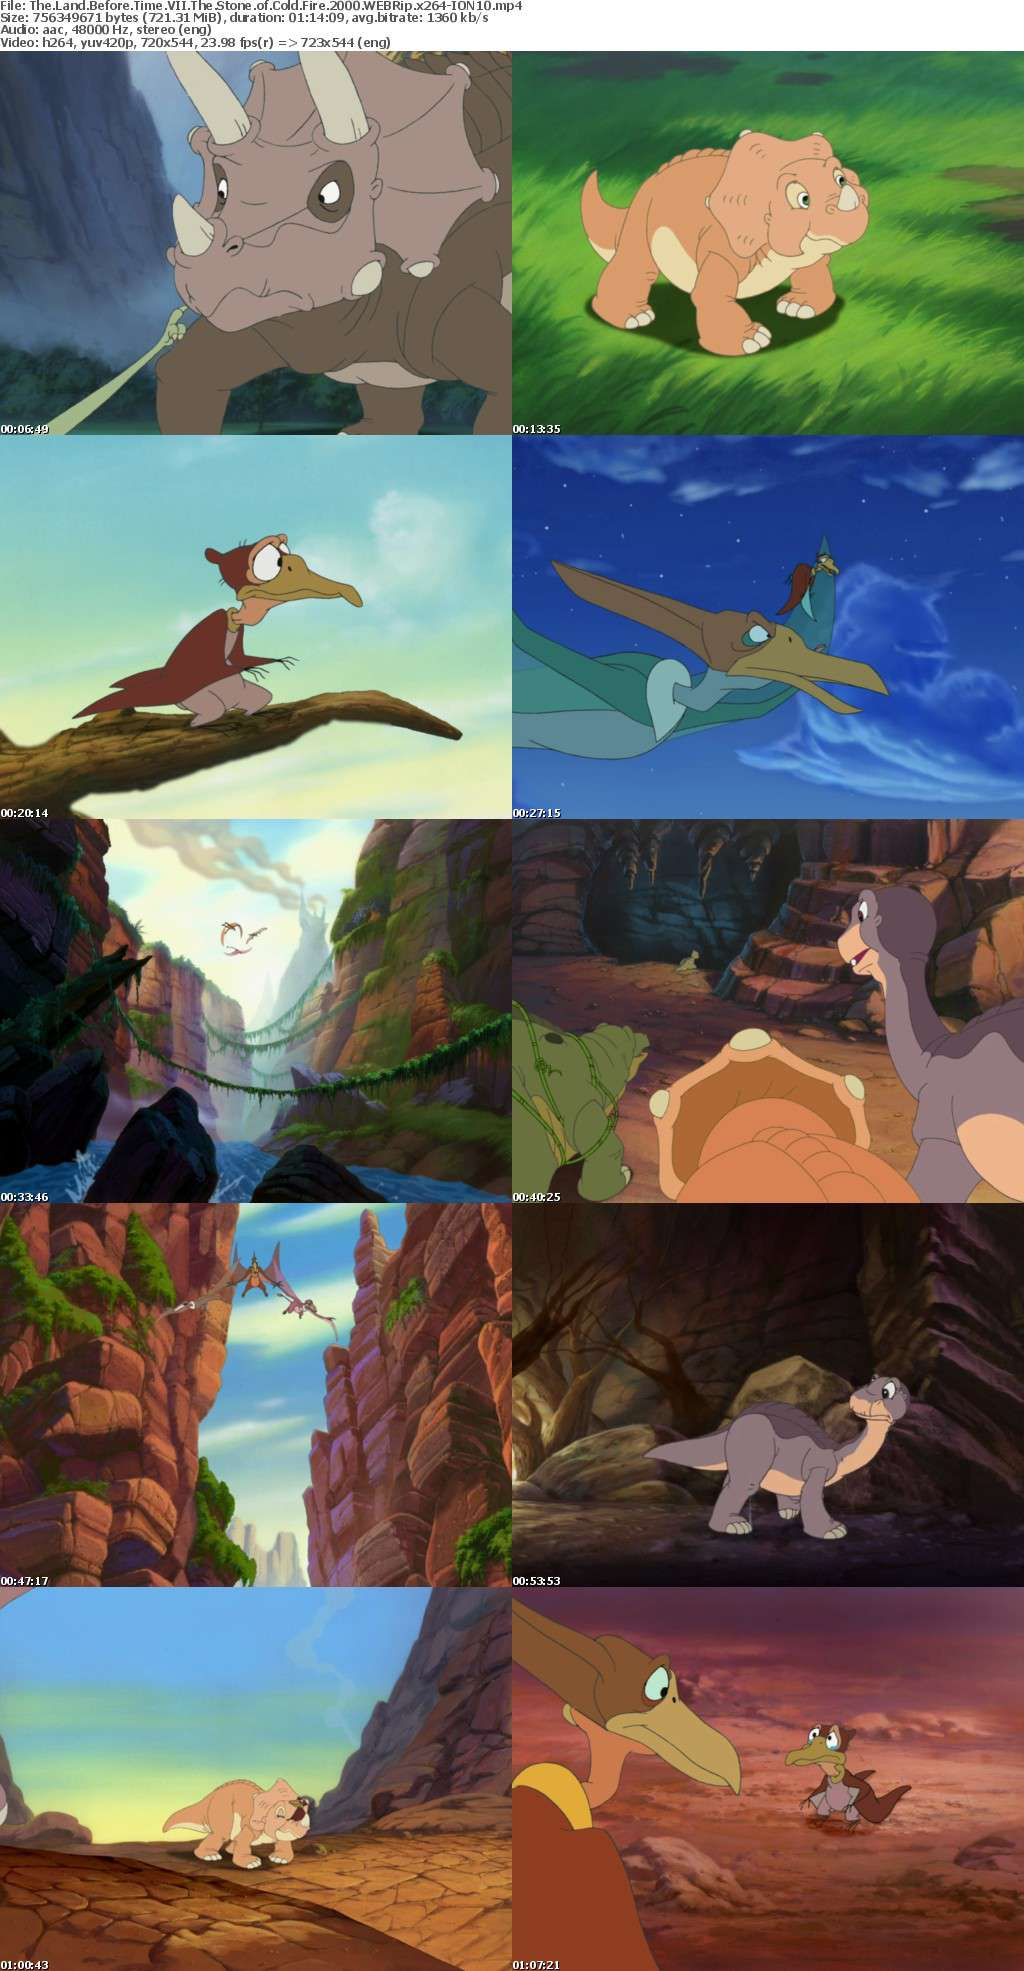 The Land Before Time VII The Stone of Cold Fire 2000 WEBRip x264-ION10